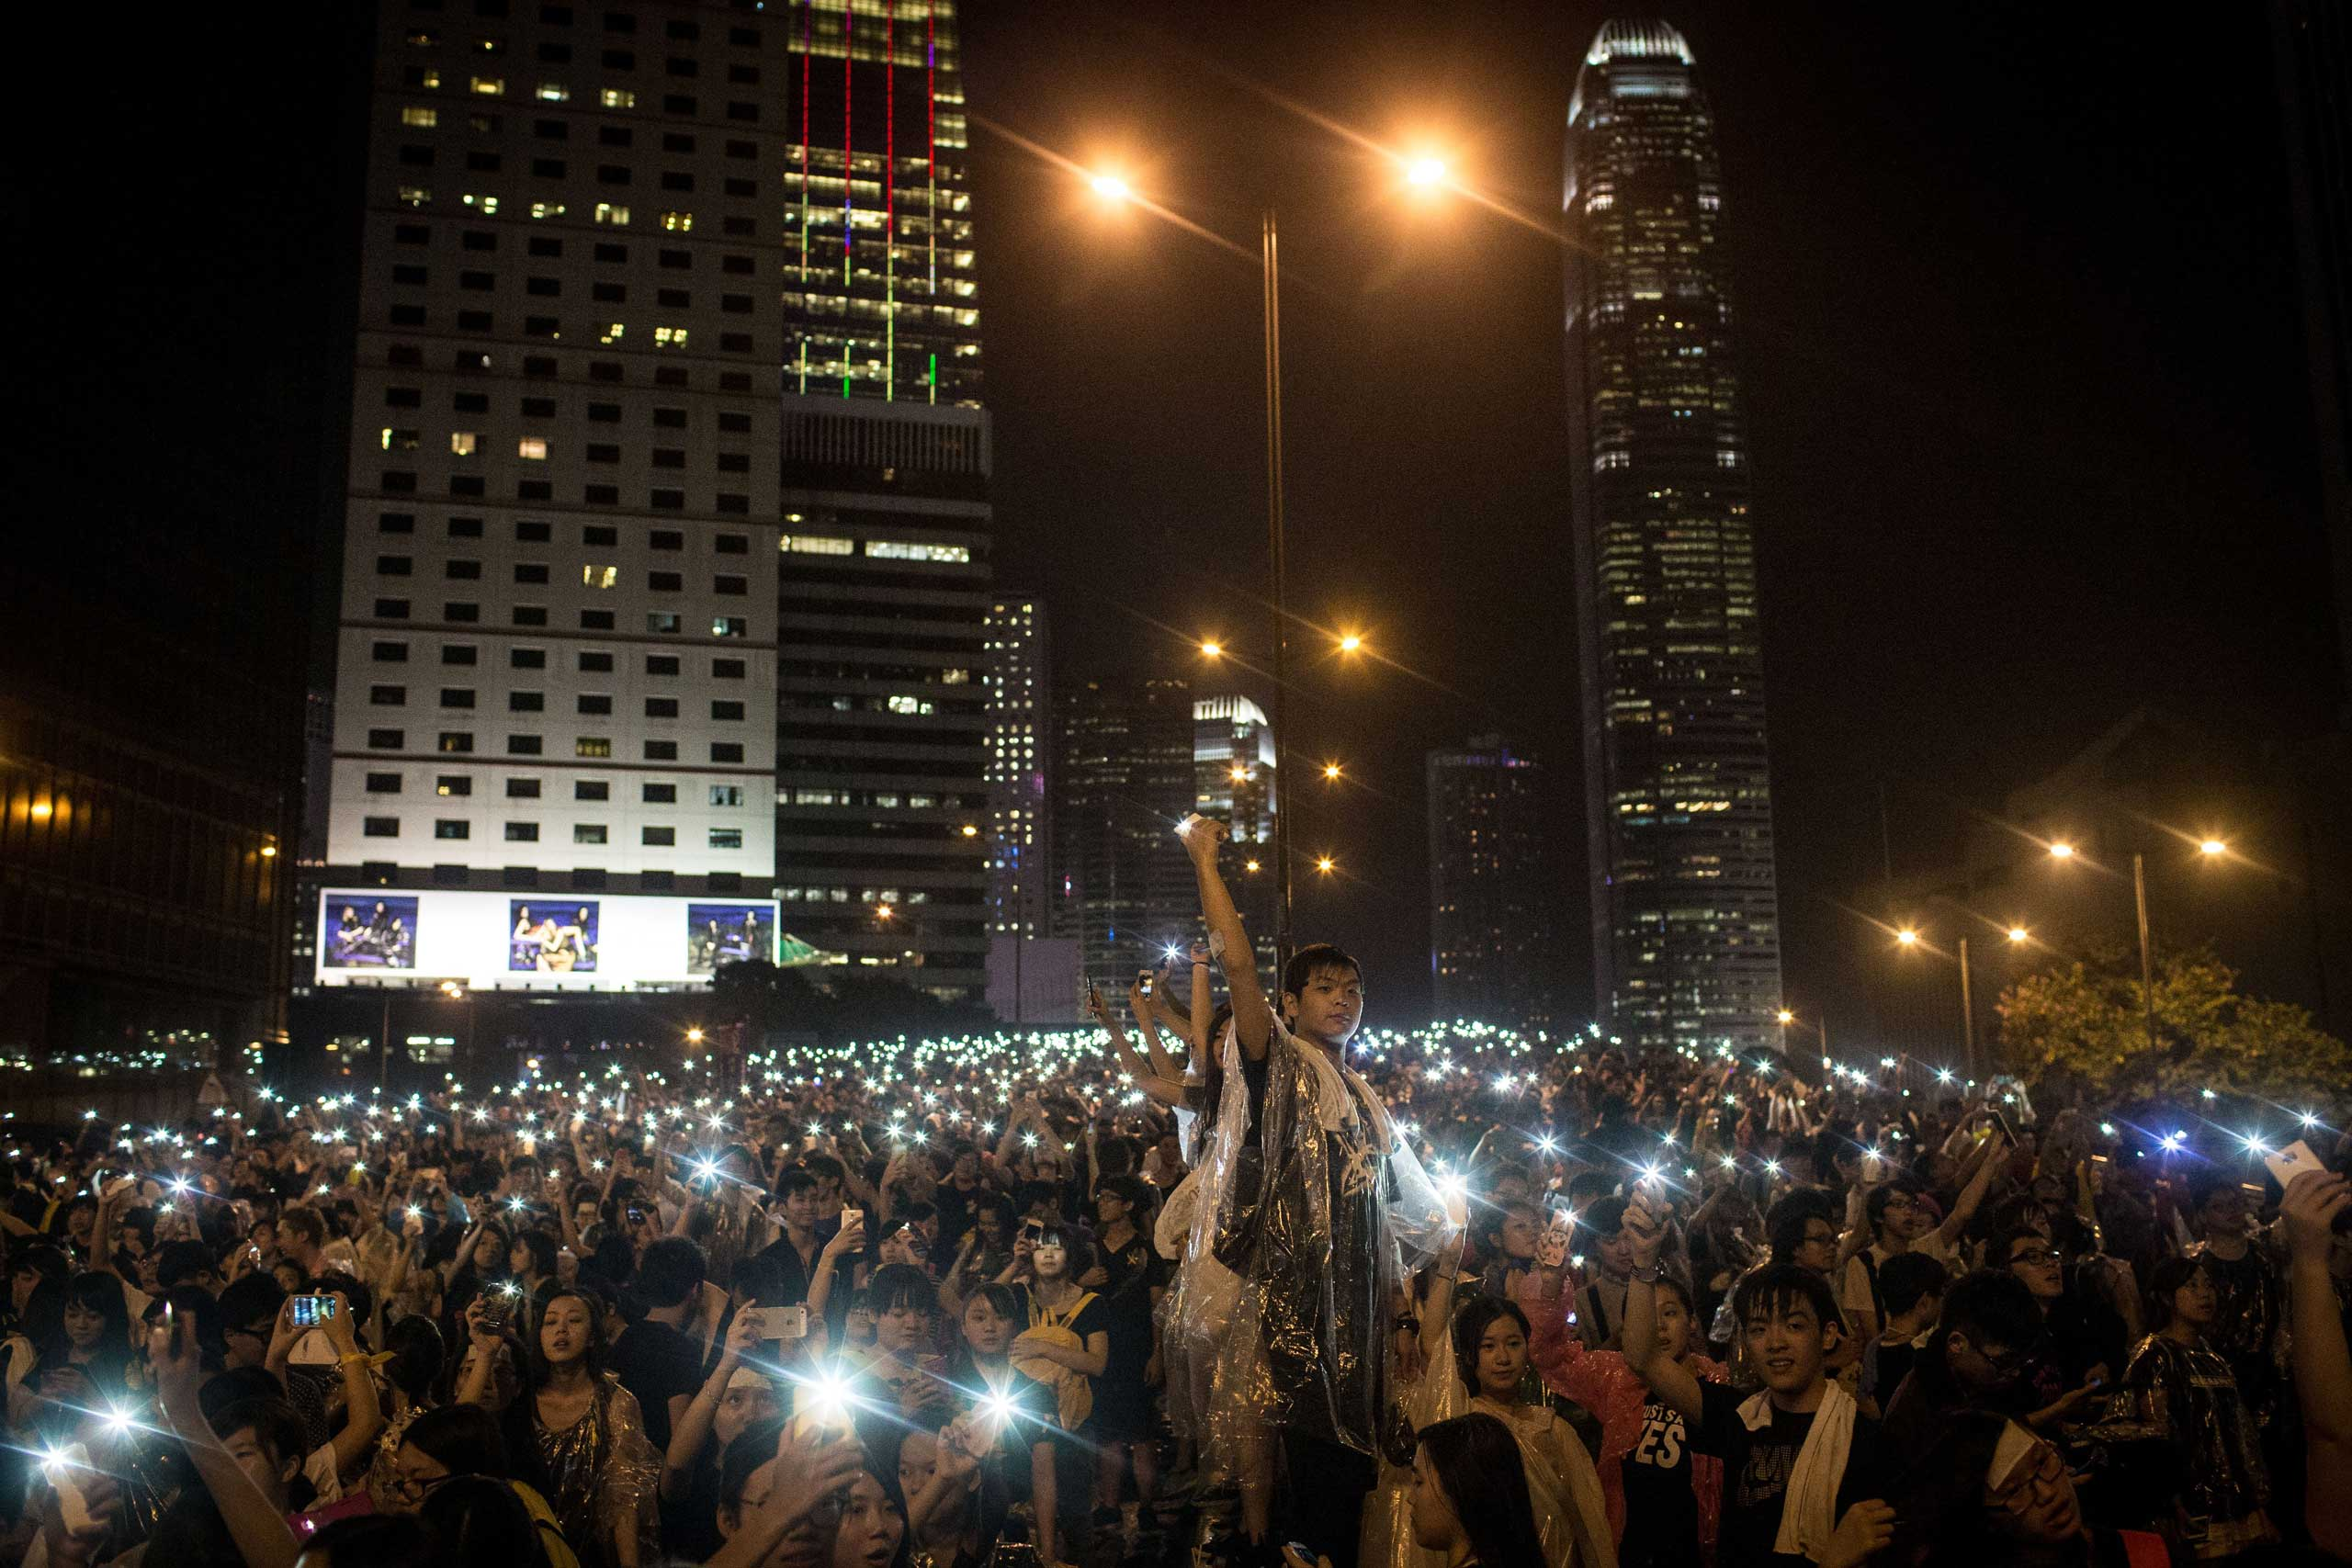 Protesters sing songs and wave their cell phones in the air after a massive thunderstorm passed over outside the Hong Kong Government Complex on Sept. 30, 2014 in Hong Kong, Hong Kong.